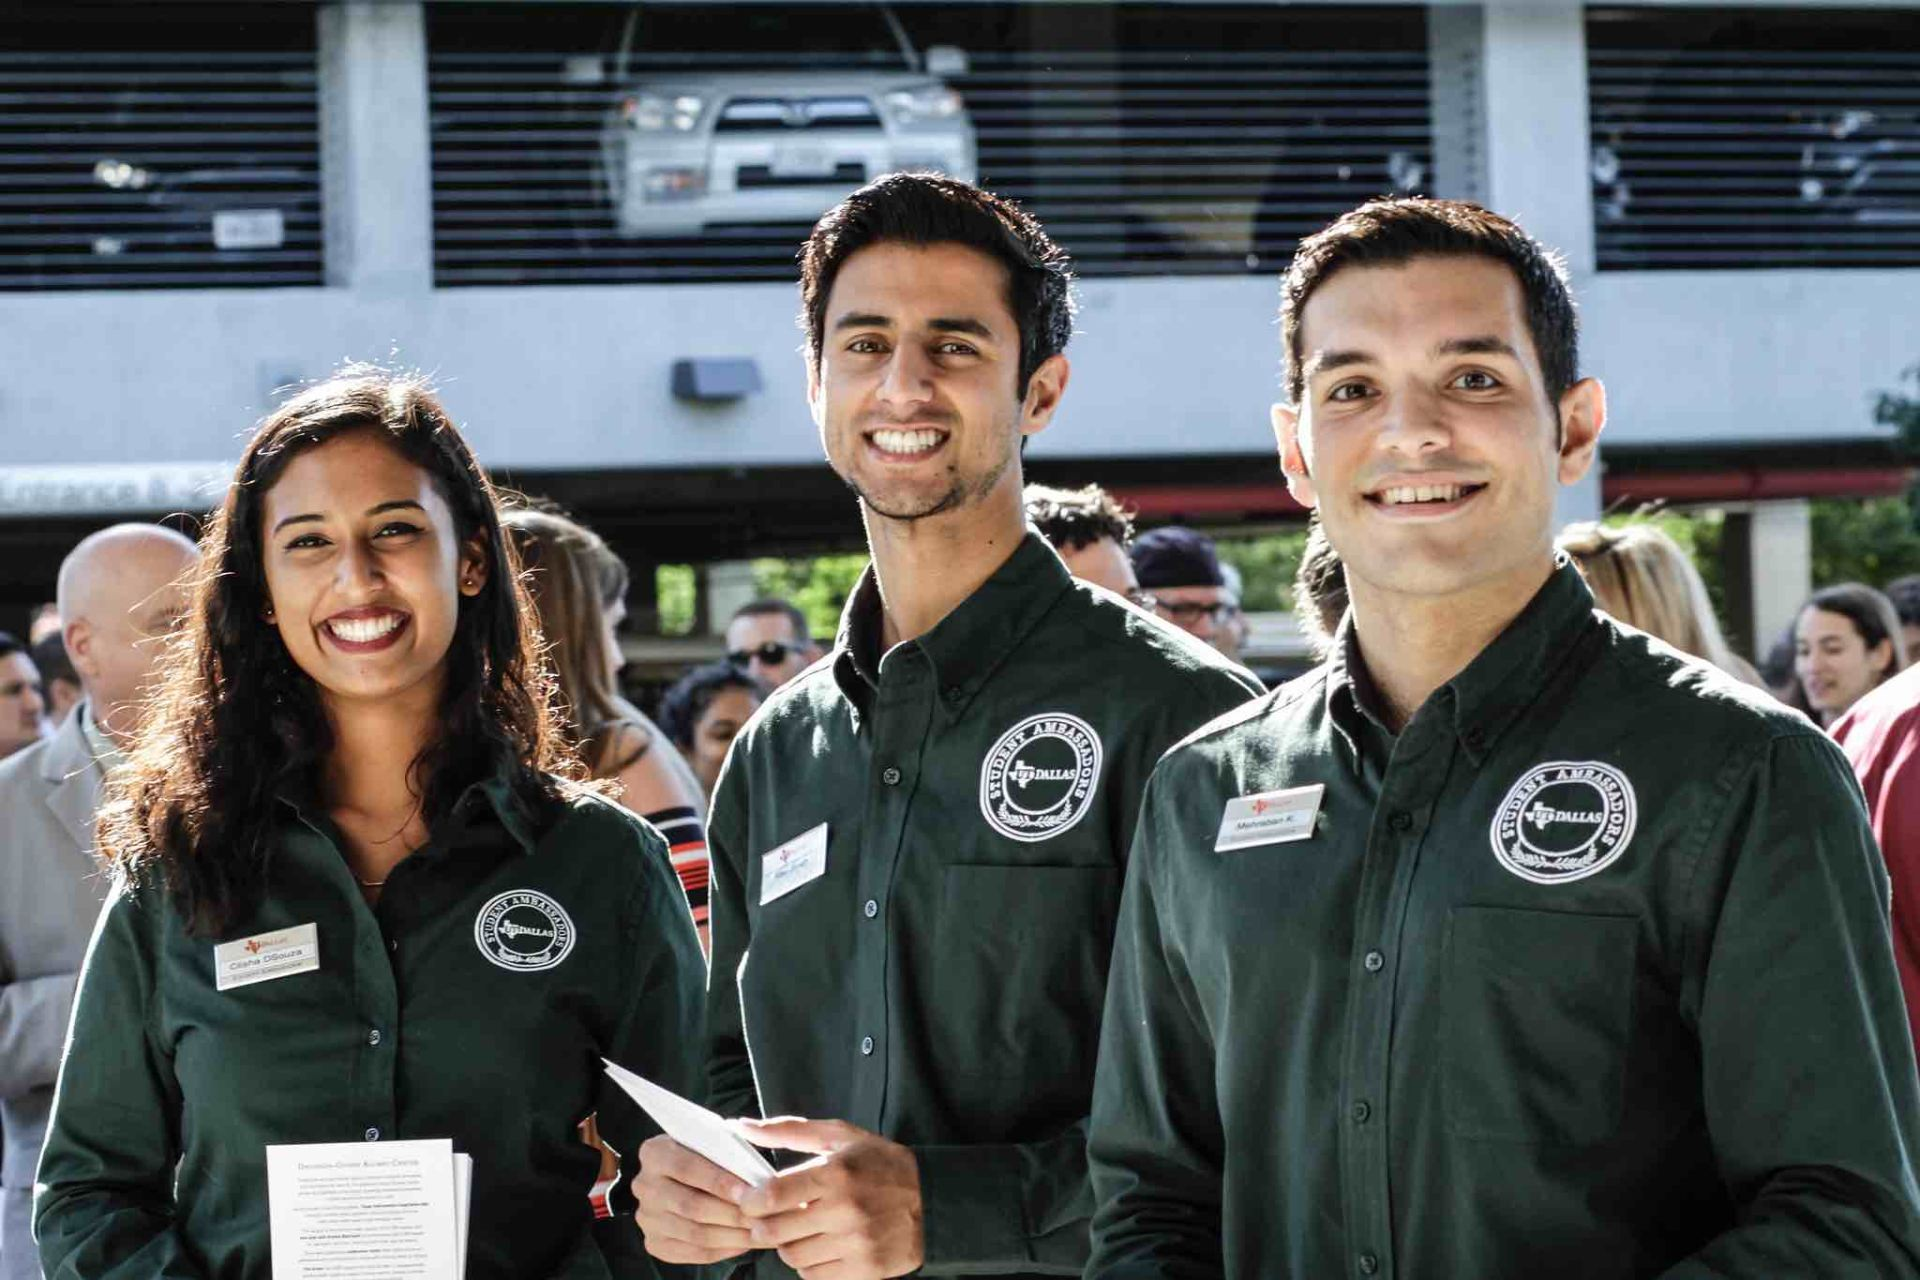 Student ambassadors at an event